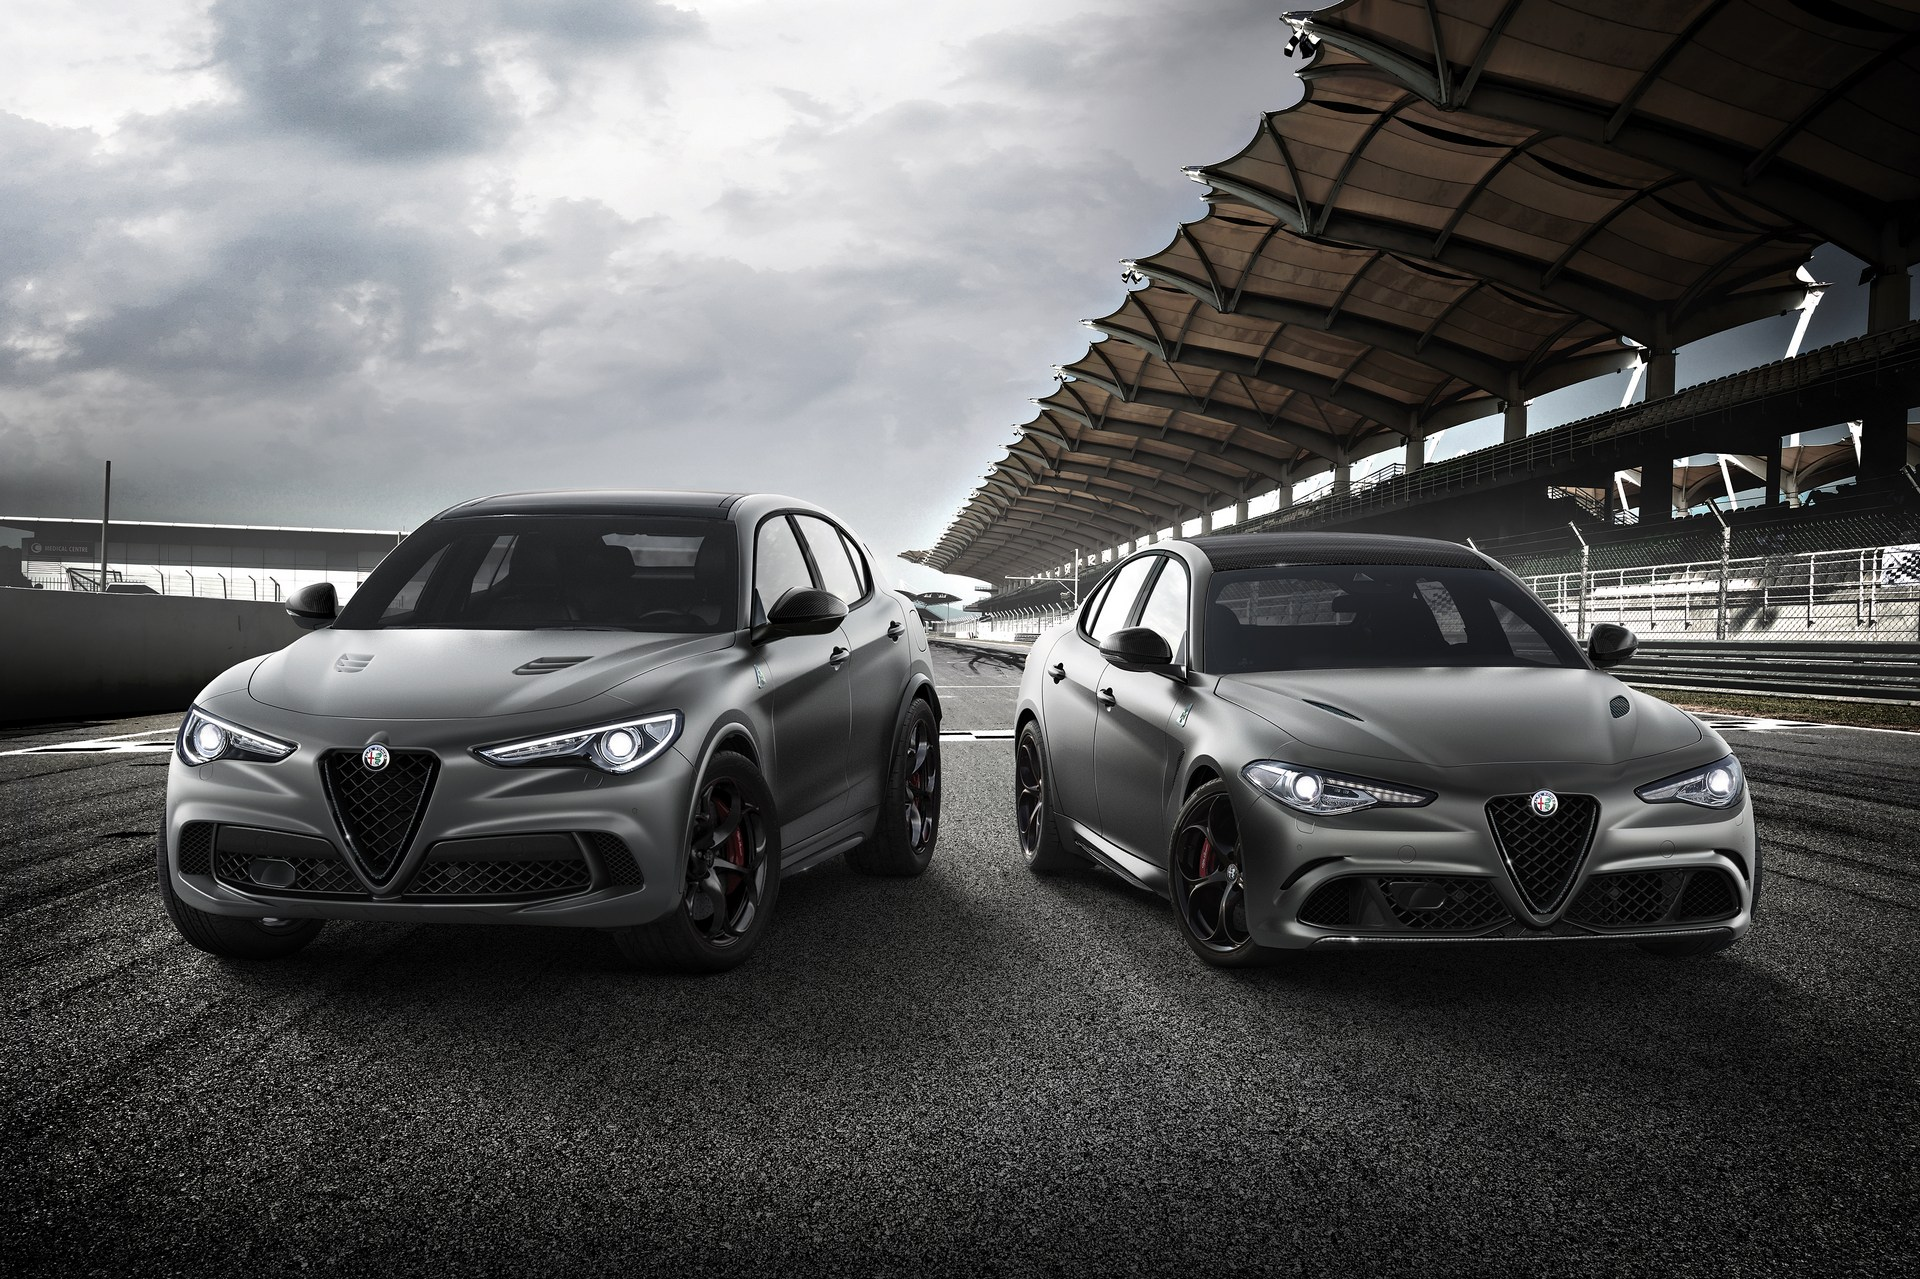 Alfa Romeo привезет в Женеву автомобили спецверсии Nürburgring Edition